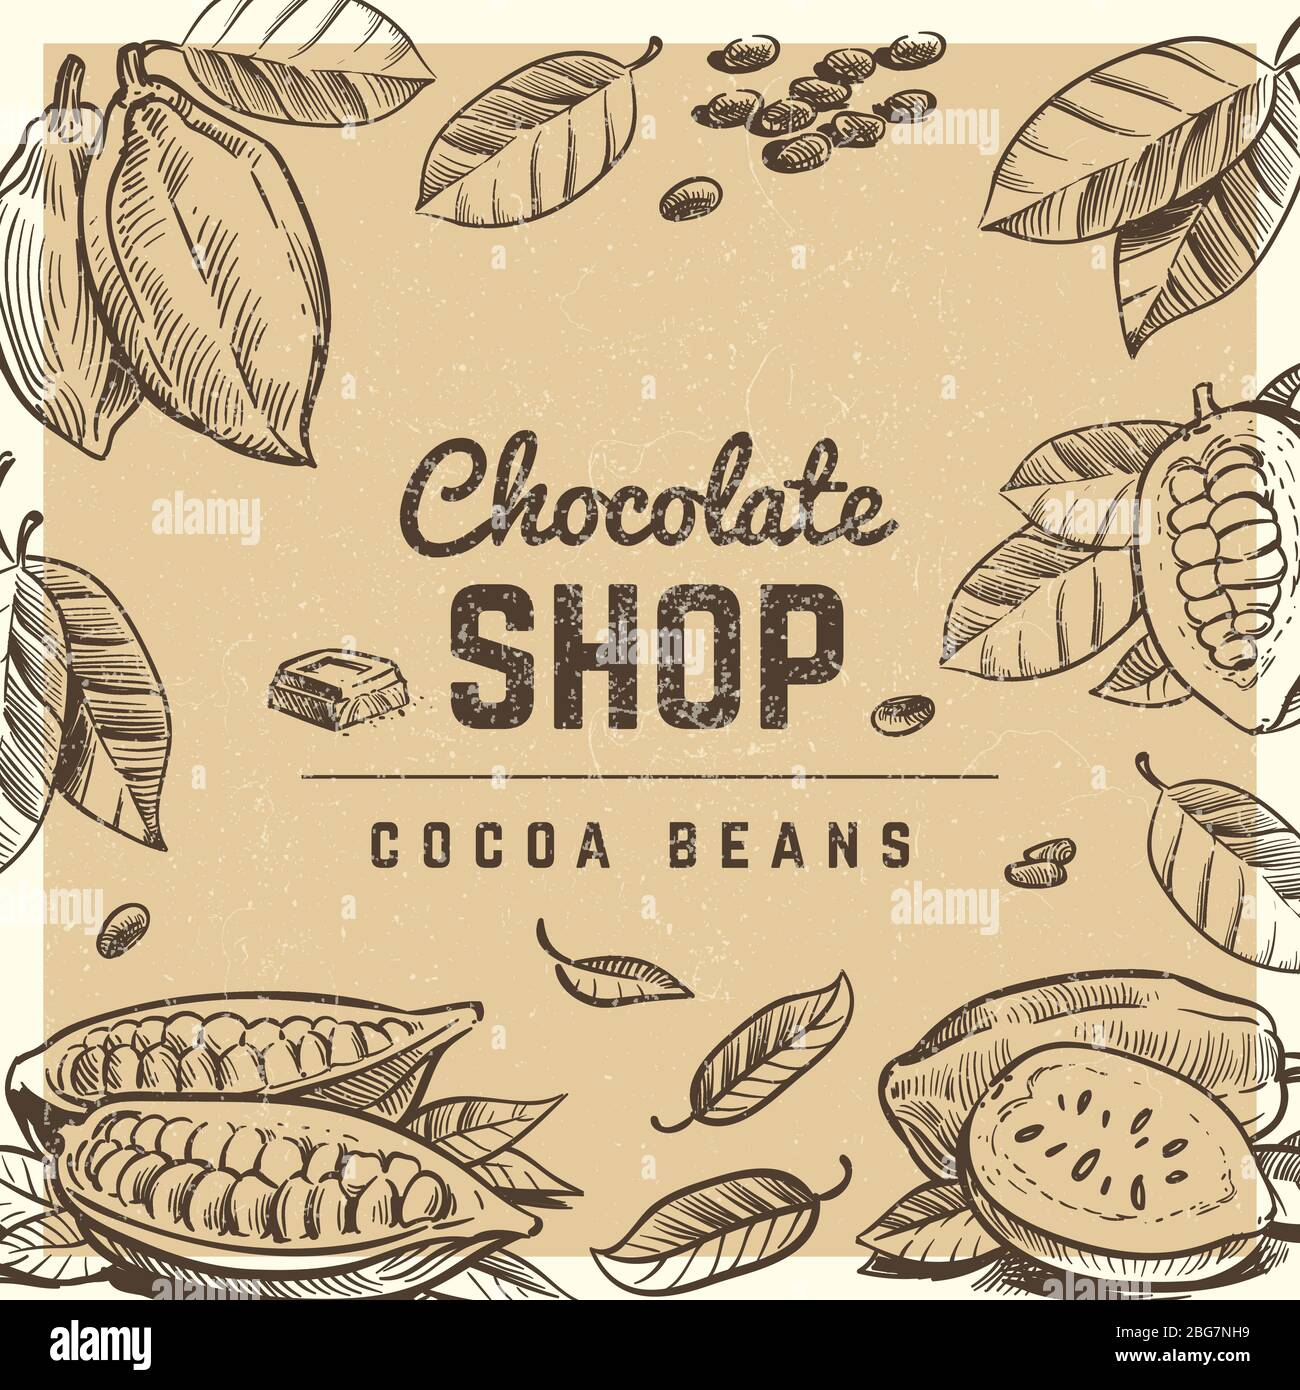 https www alamy com chocolate shop vintage poster and banner design with sketched chocolate bar and cocoa beans illustration vector image354212469 html